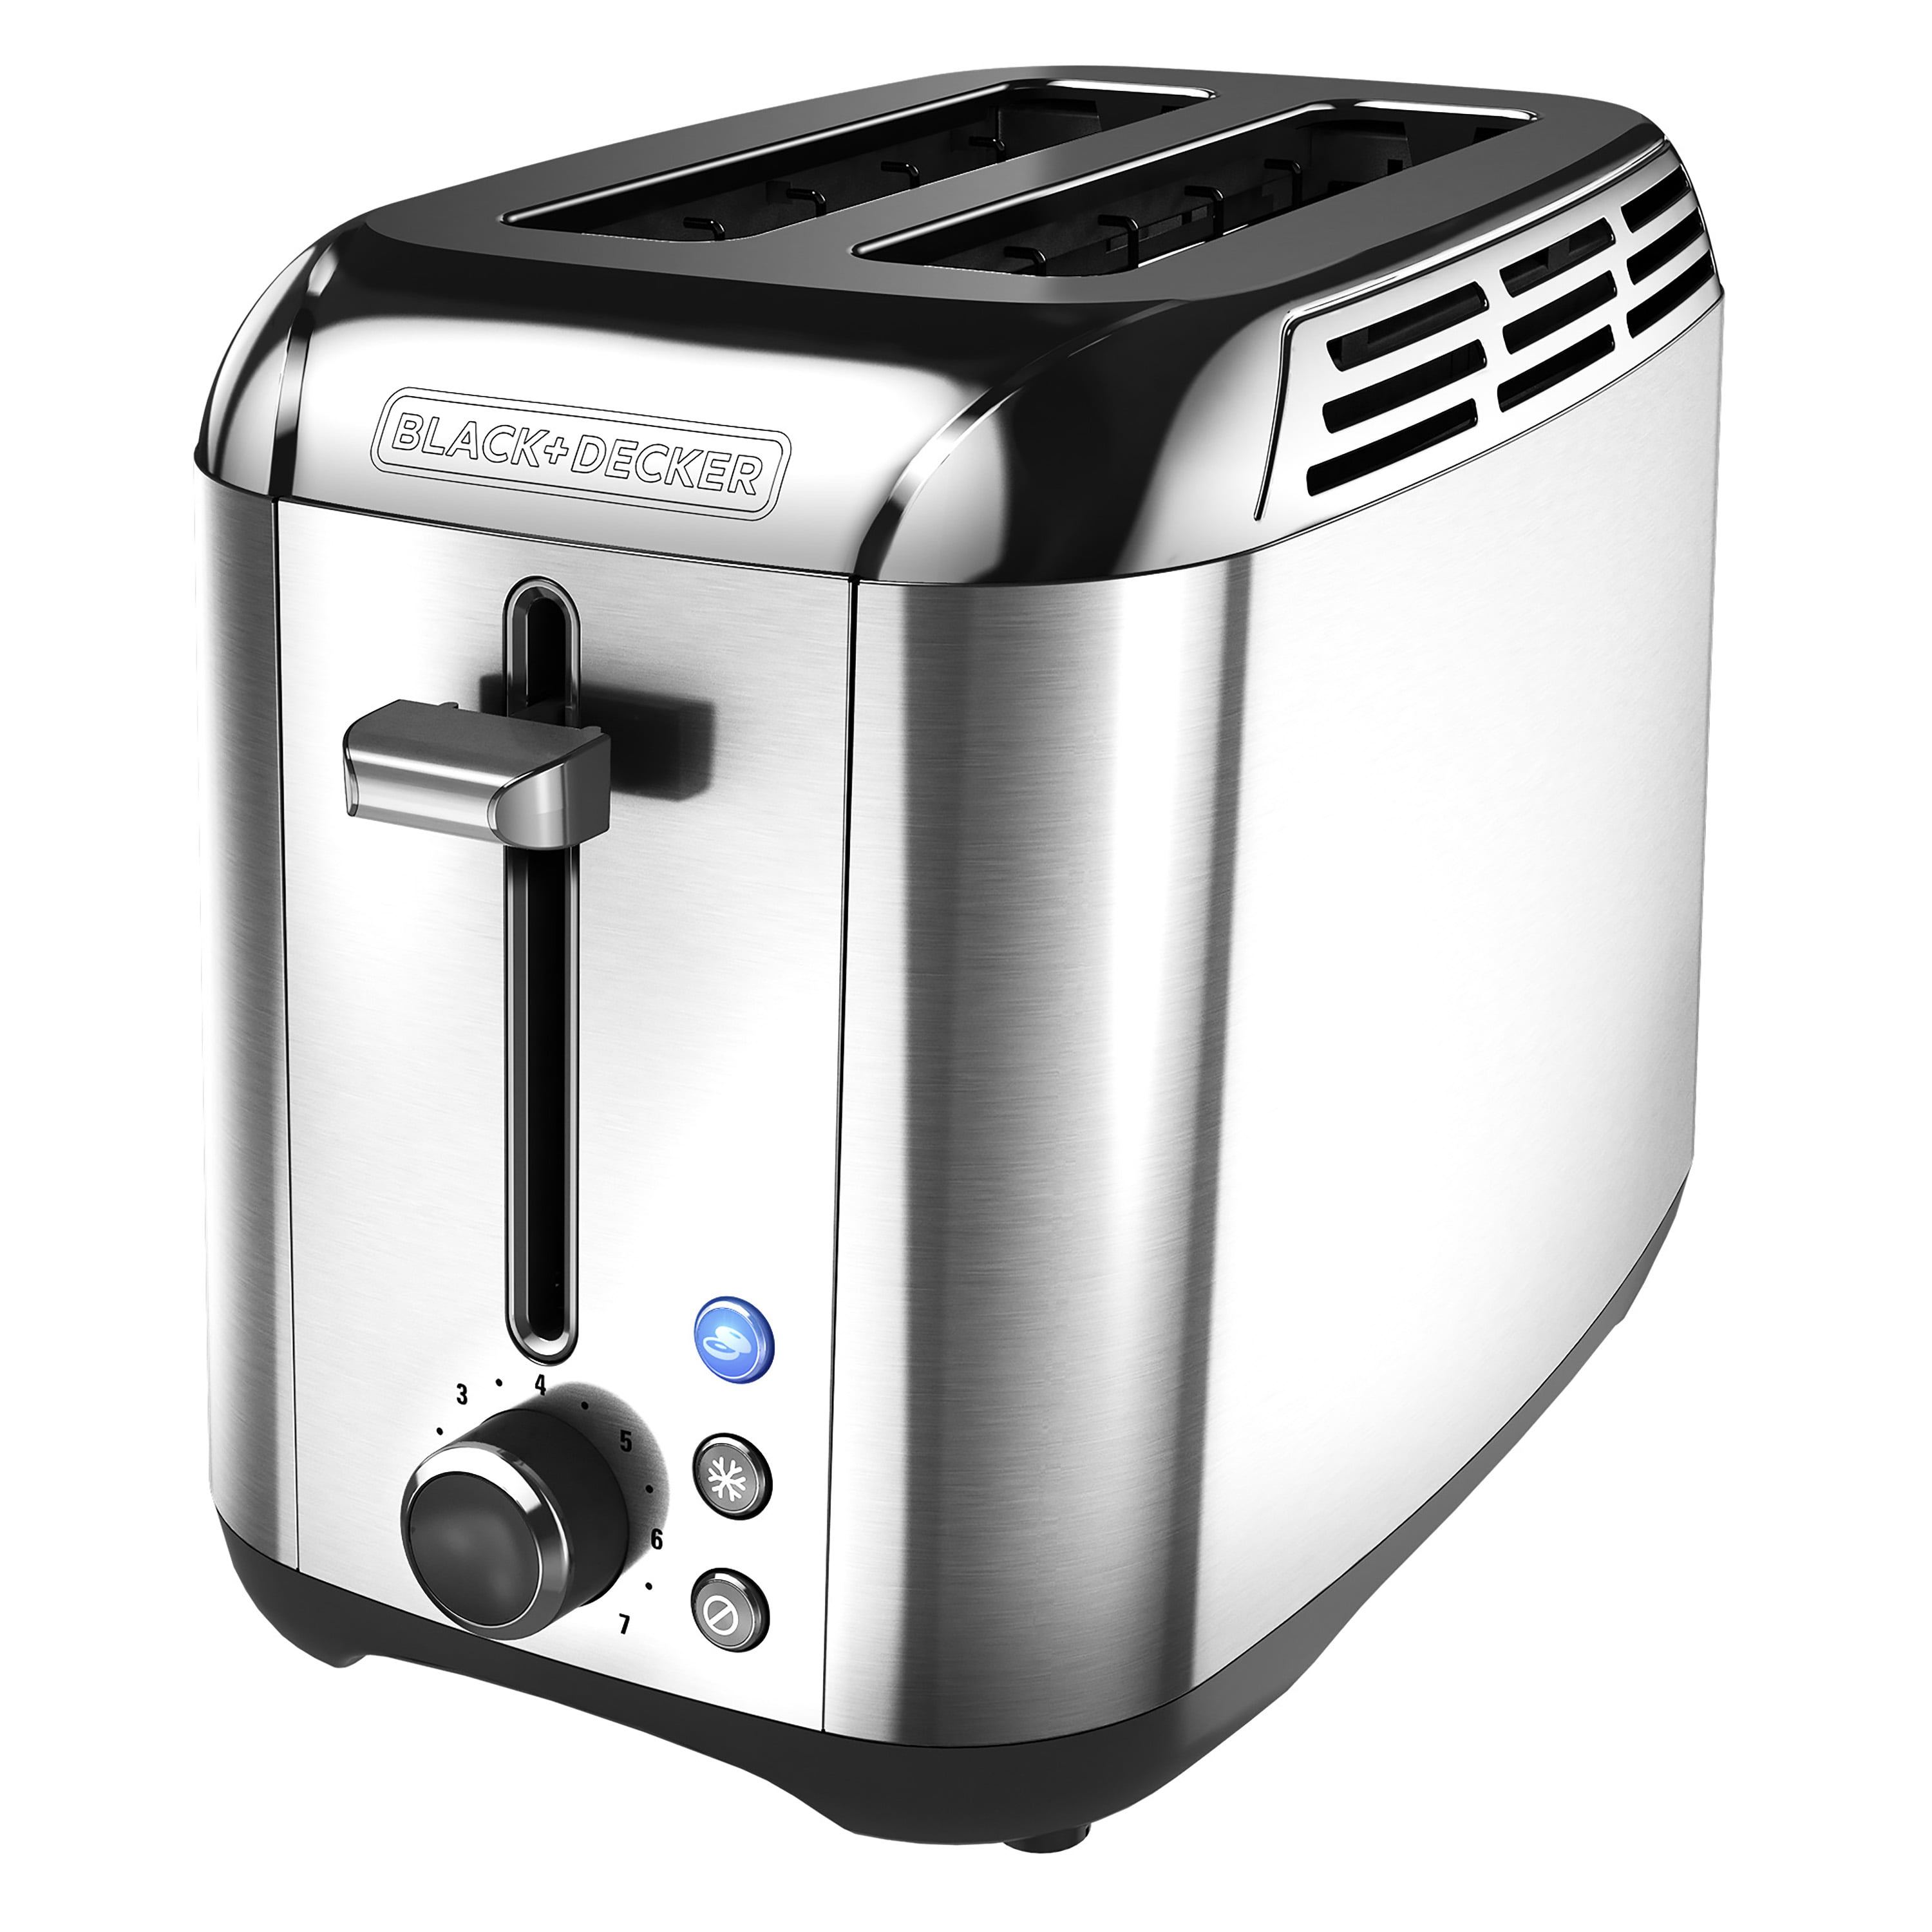 dp slice beach modern hamilton amazon larger com toaster silver chrome view fast